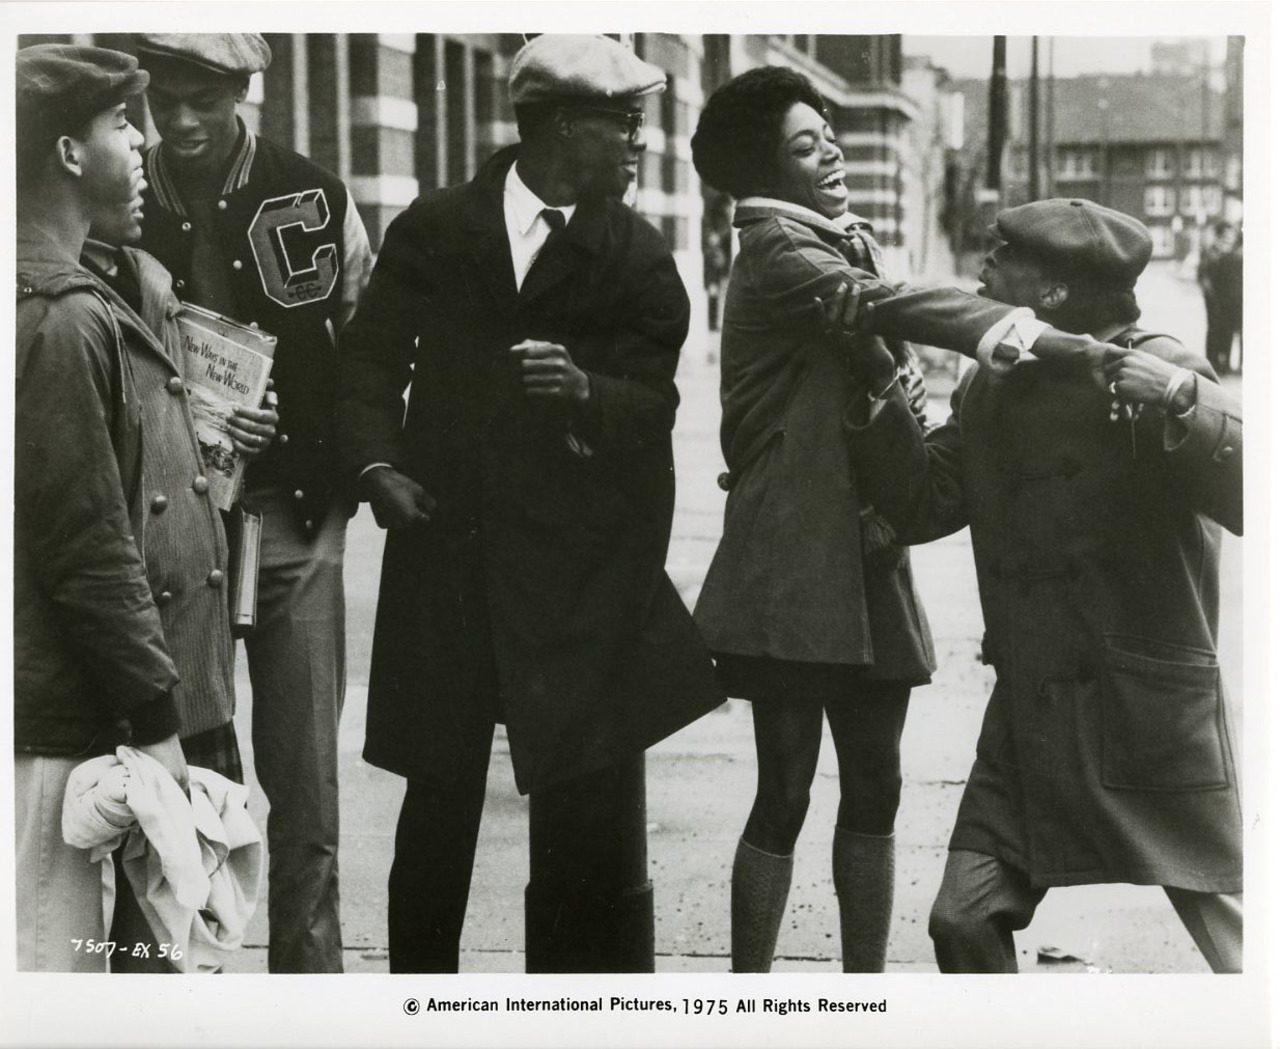 If you've never seen '70s-era Pam Grier on a big screen, you can't miss this... COOLEY HIGH (1975)